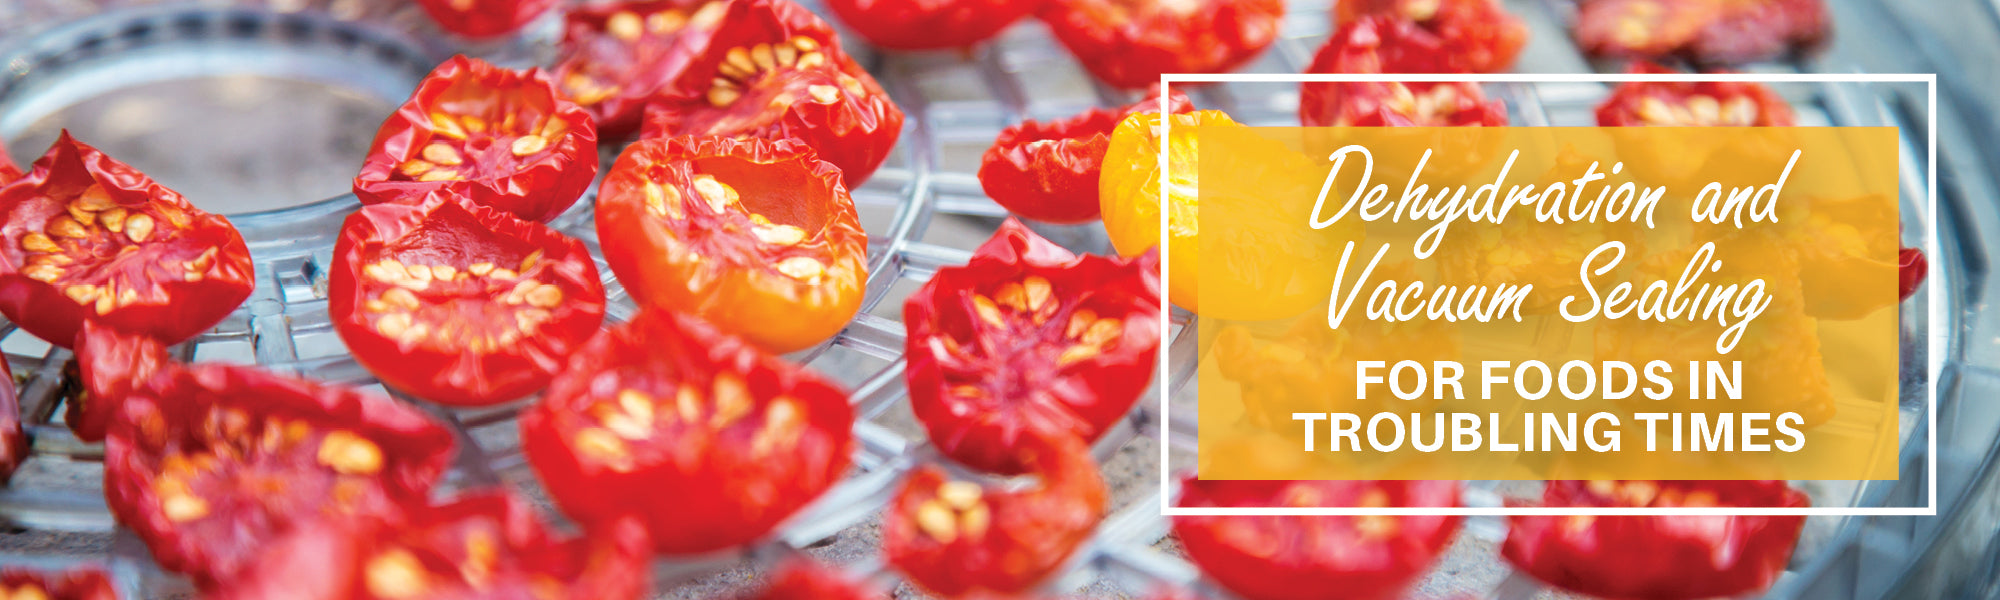 Dehydration and Vacuum Sealing for Foods in Troubling Times